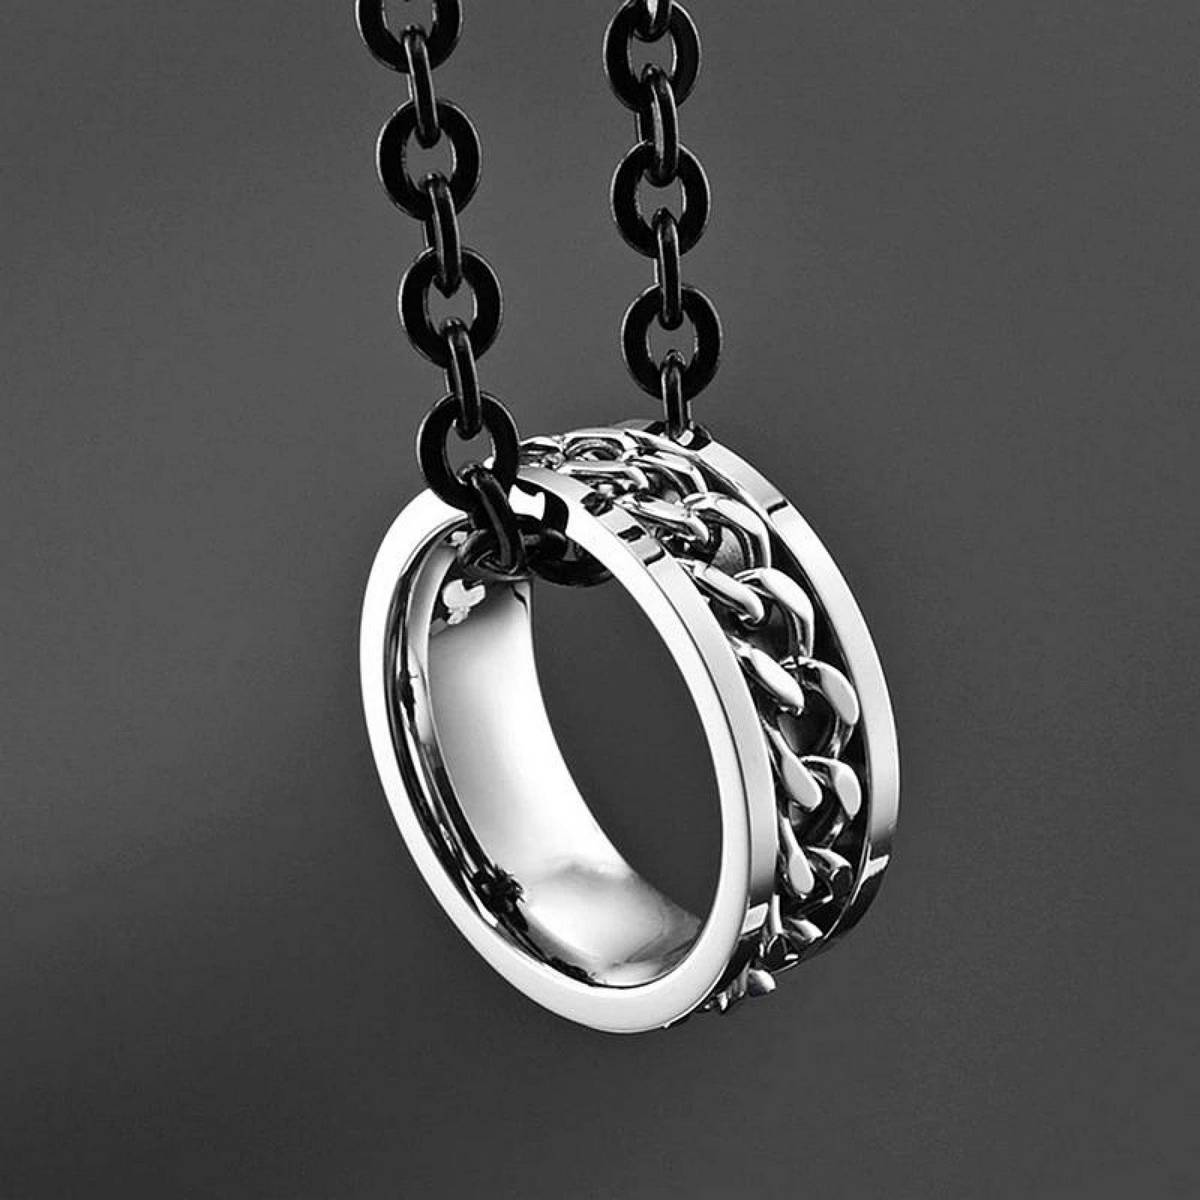 B H titanium stainless steel wedding rings for women accessories punk engagement couple silver male men chain finger ring female